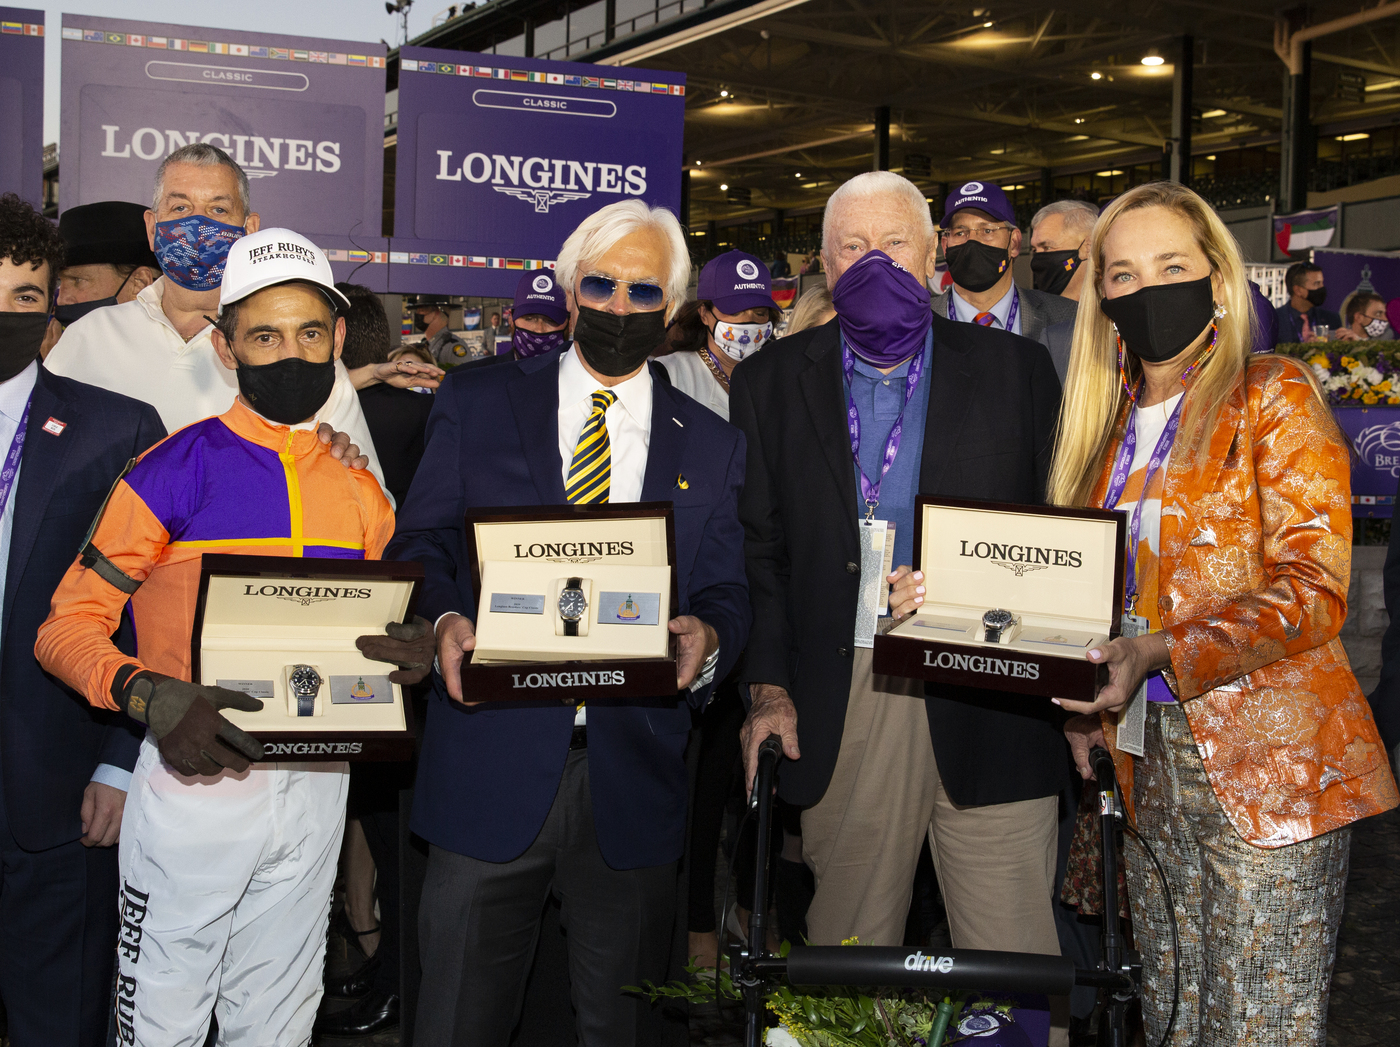 Longines Flat Racing Event: Authentic raced into victory at the 2020 Longines Breeders Cup Classic 5